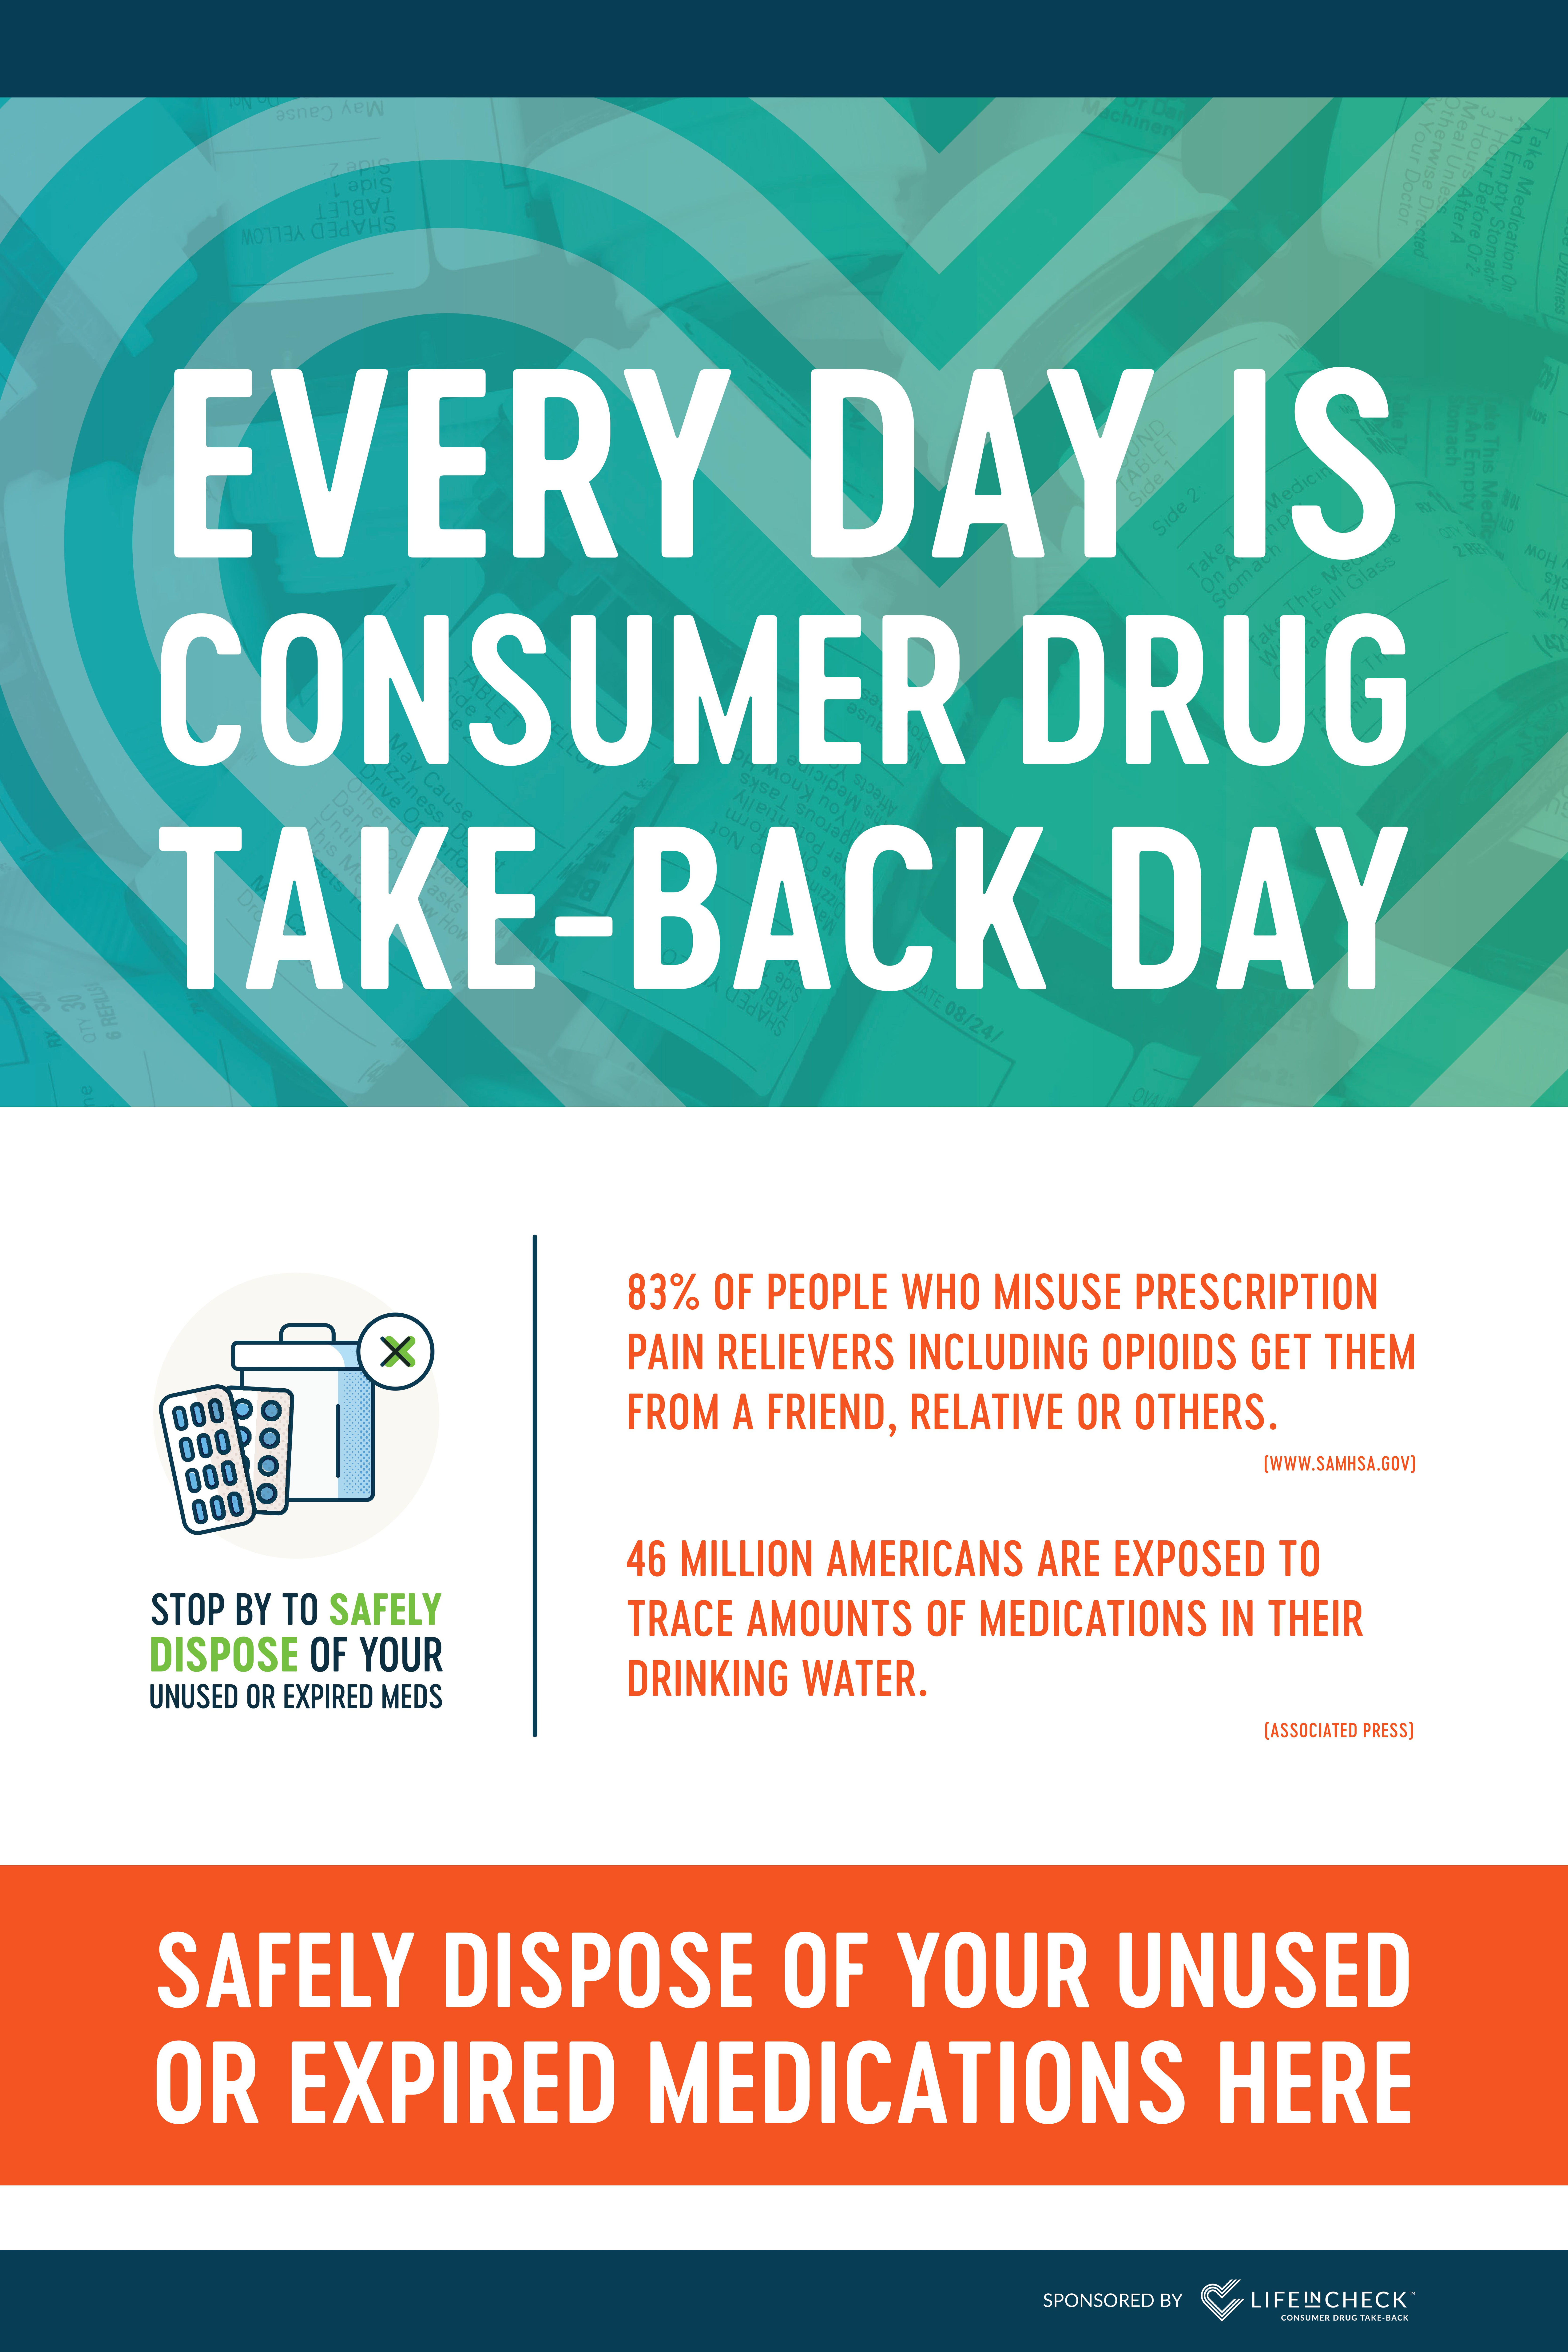 Every Day is Consumer Drug Take-Back Day